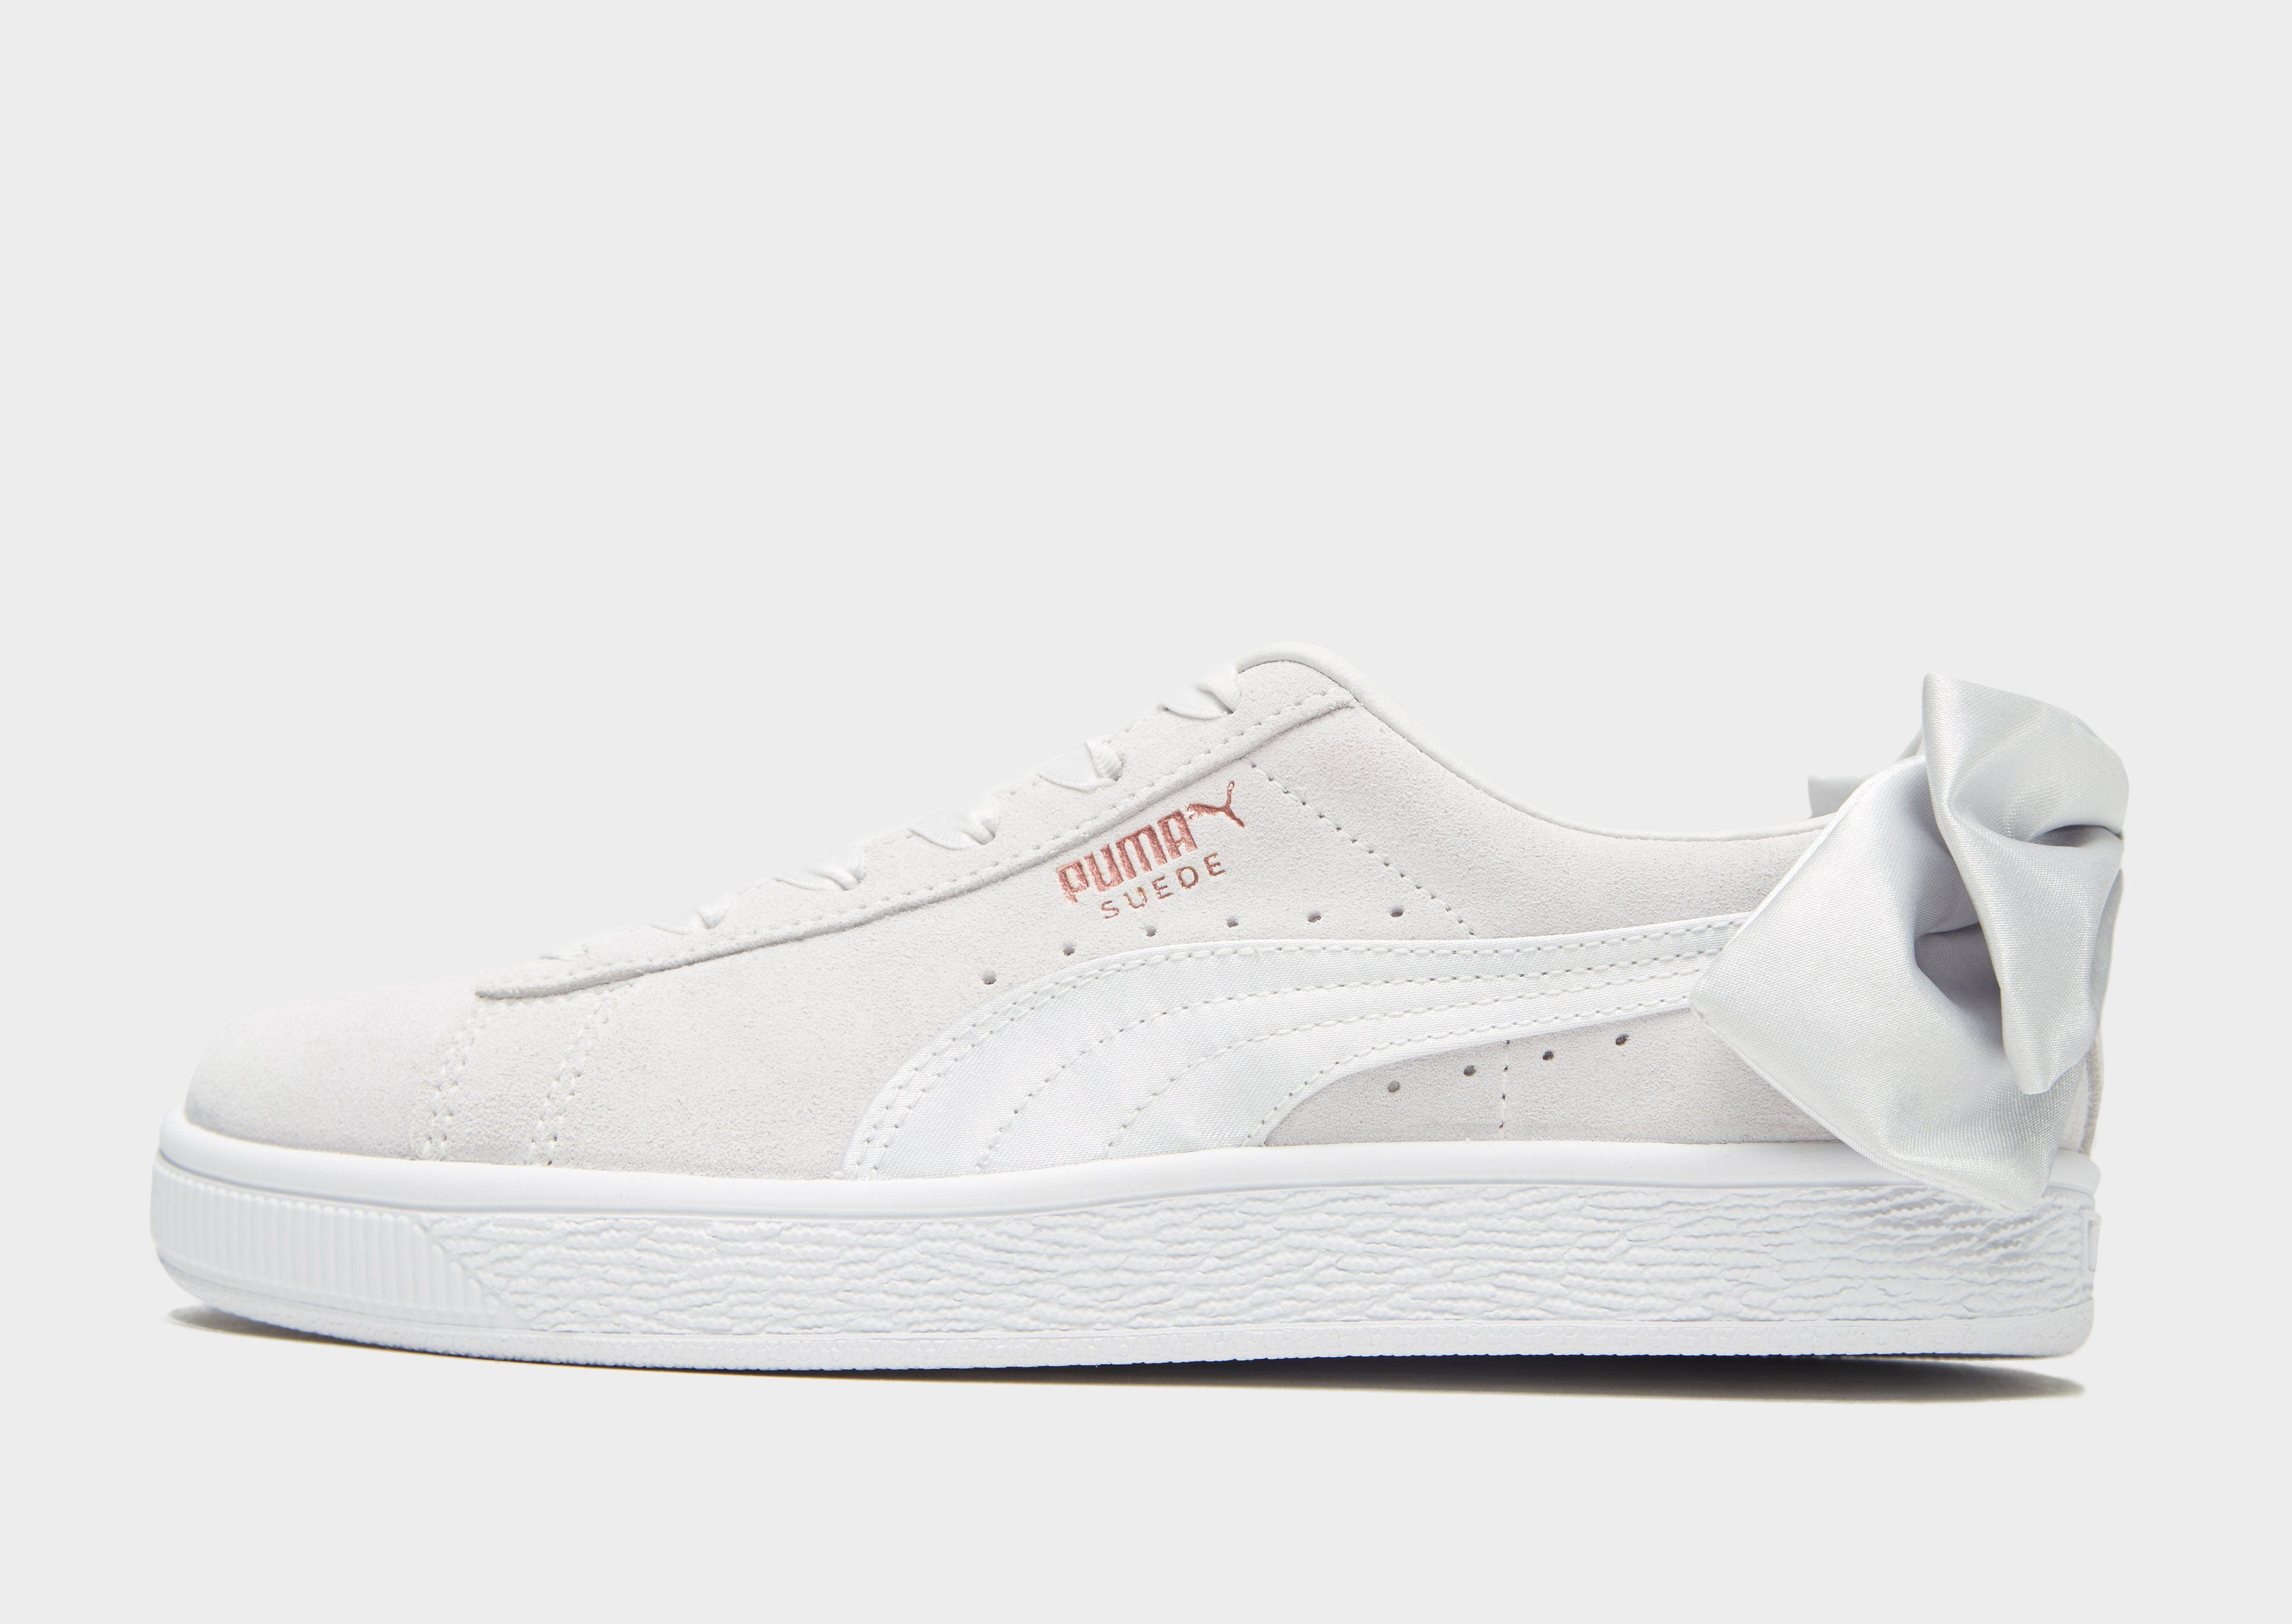 reputable site 83089 8da8f Puma Suede Bow Women's | JD Sports